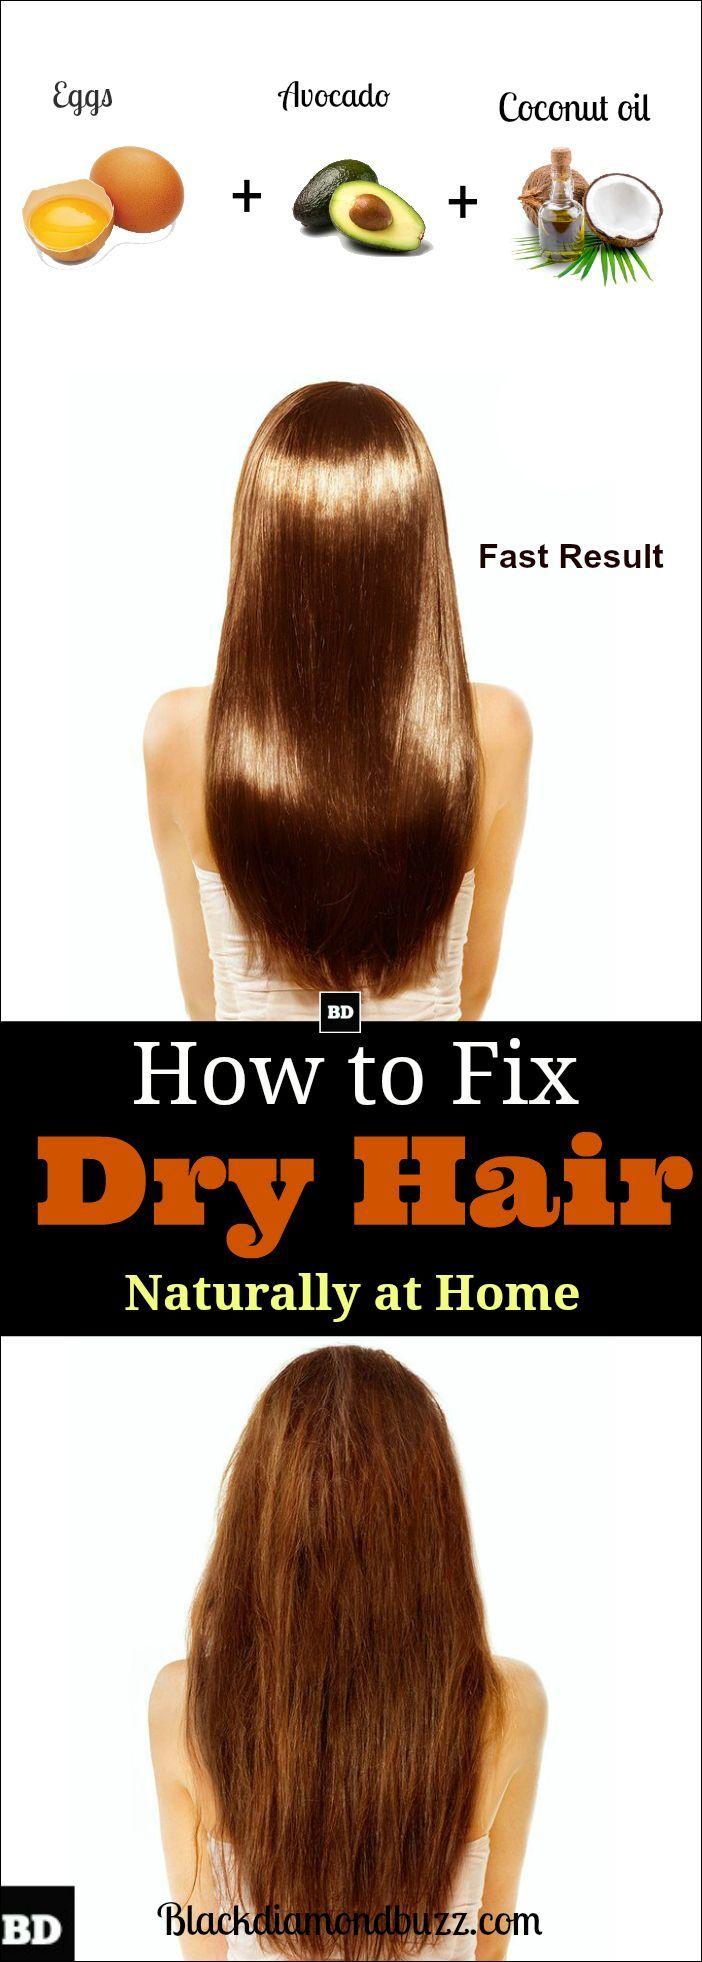 Dry Hair Remedies- You can fix your dry hair and frizzy hair naturally by applying these hair treatments at home. These DIY hair solutions will make your hair healthy and shiny.Try now these best home remedies for dry hair and get rid of frizzy overnight.